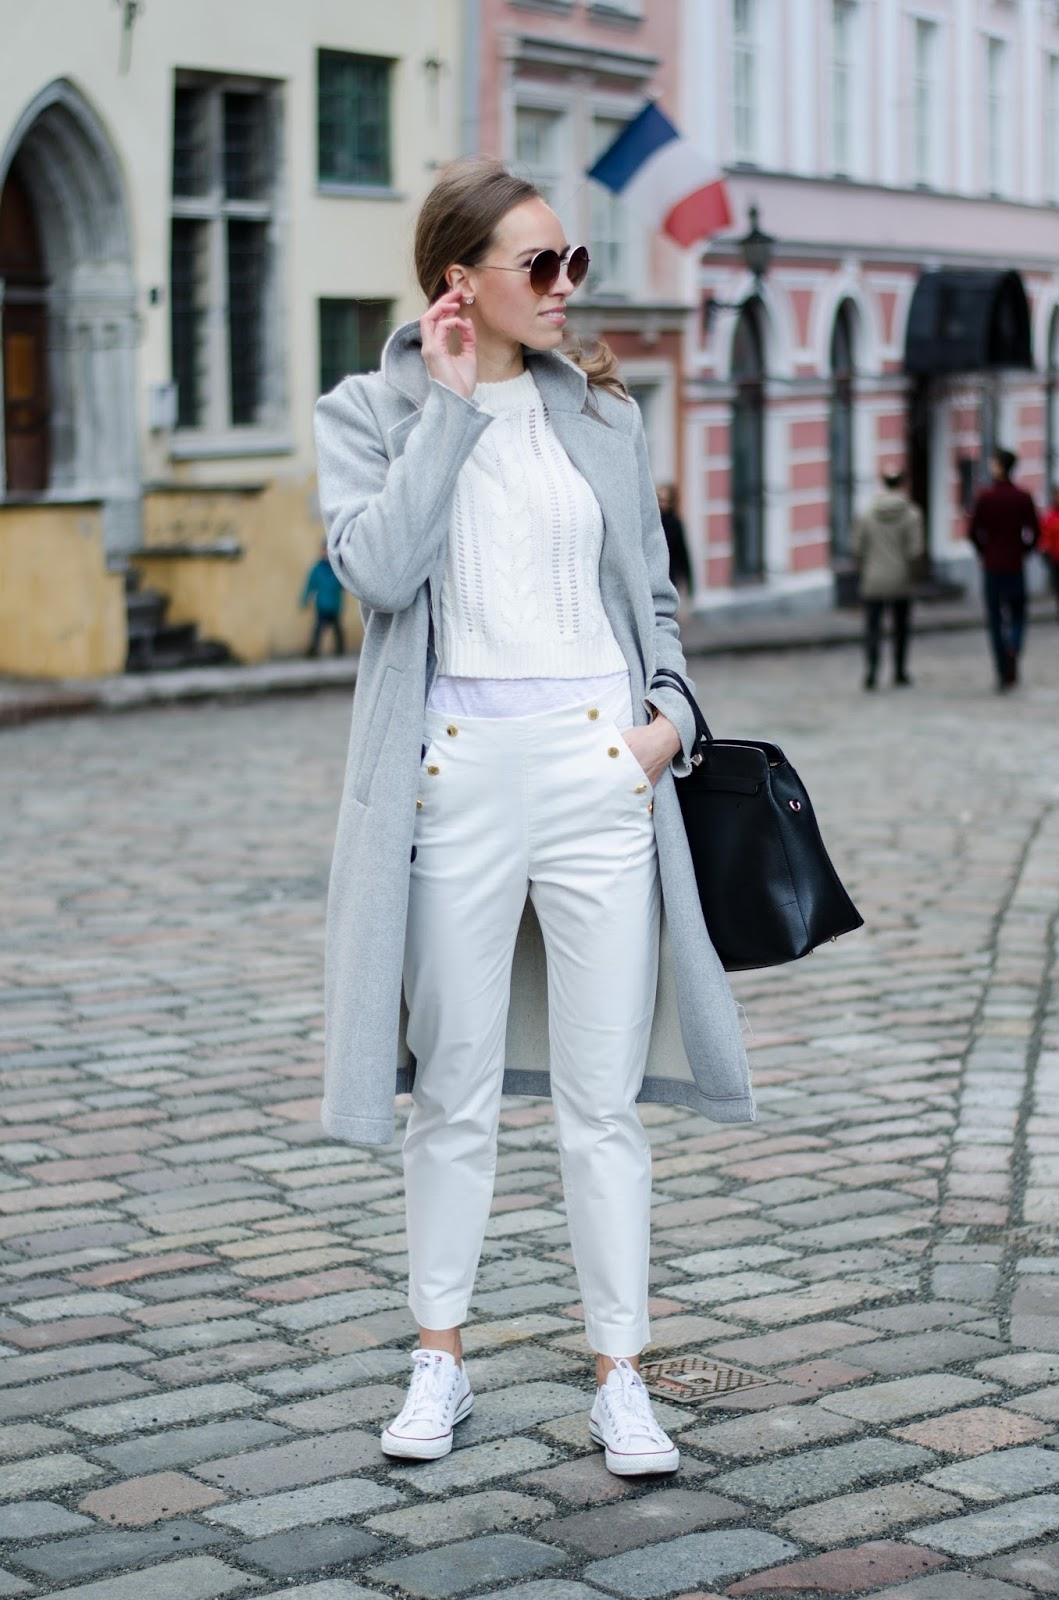 kristjaana mere spring white outfit cropped jumper pants converse snerakers gray coat minimalist fashion